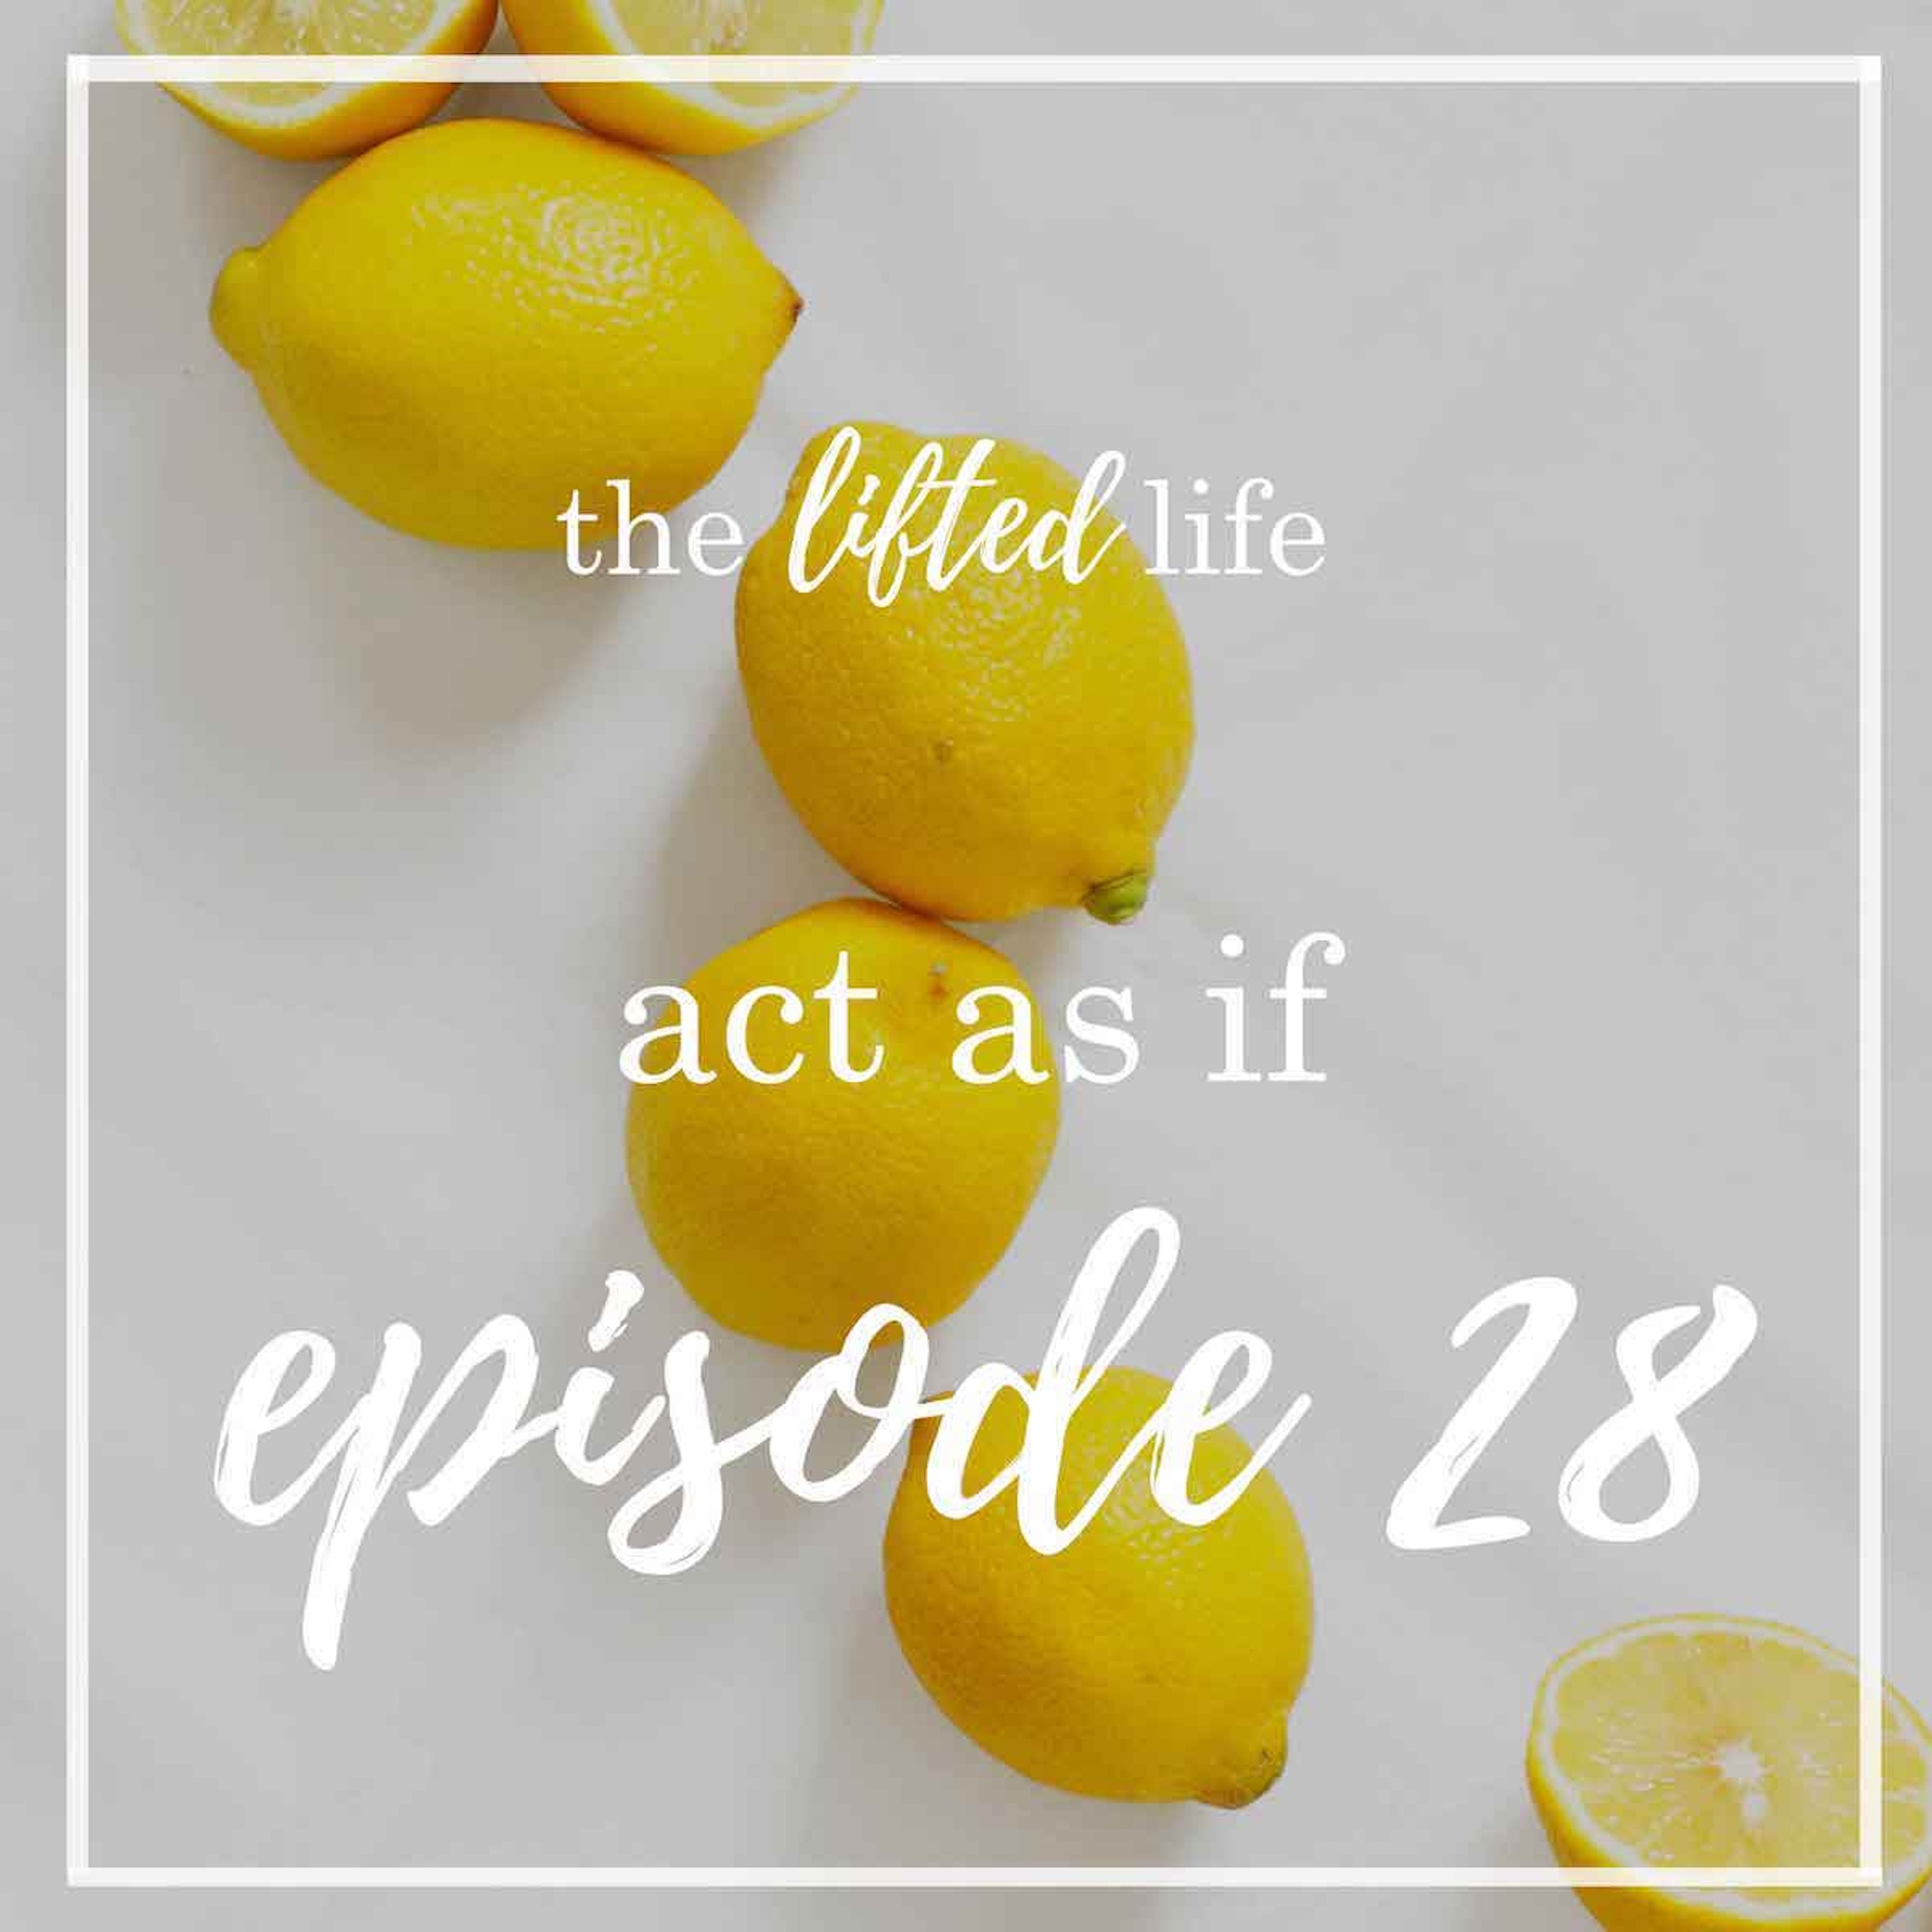 Ep #29: Act as If